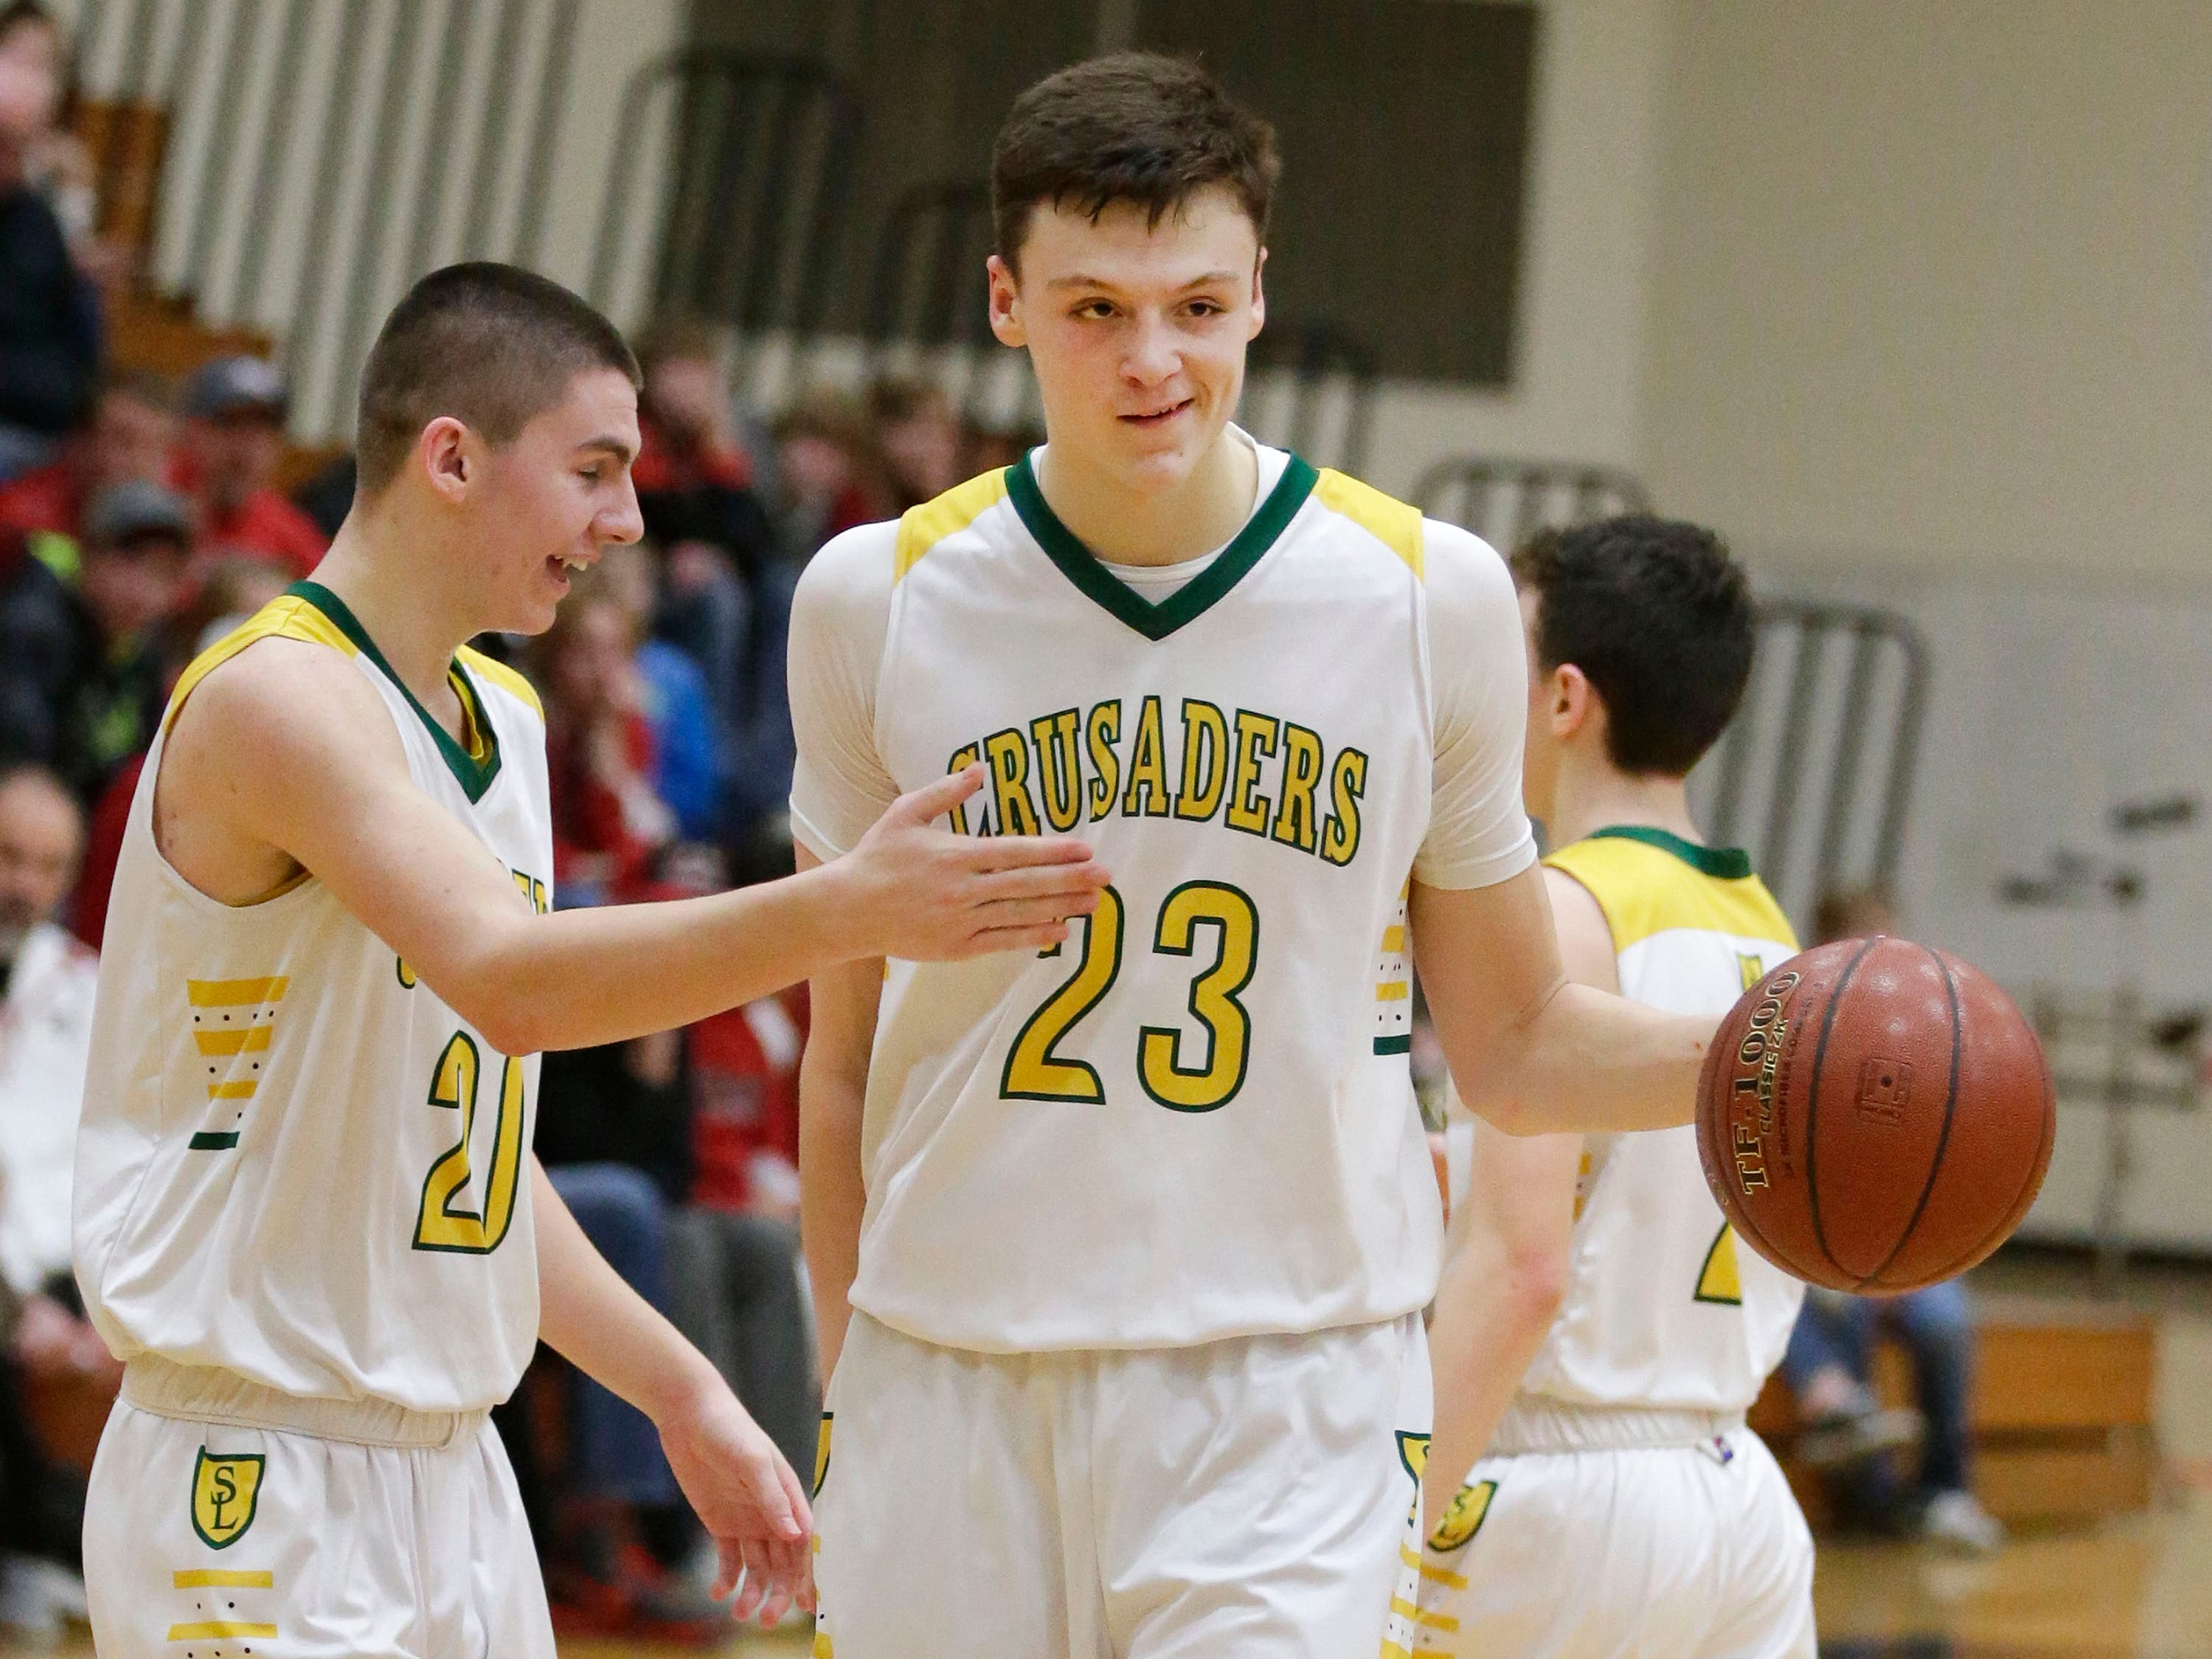 Sheboygan Lutheran's Jacob Ognacevic (23) reacts with team mate Jonah Jurss (21) following their 83-69 win over Rio, Saturday, March 9, 2019, in West Bend, Wis.